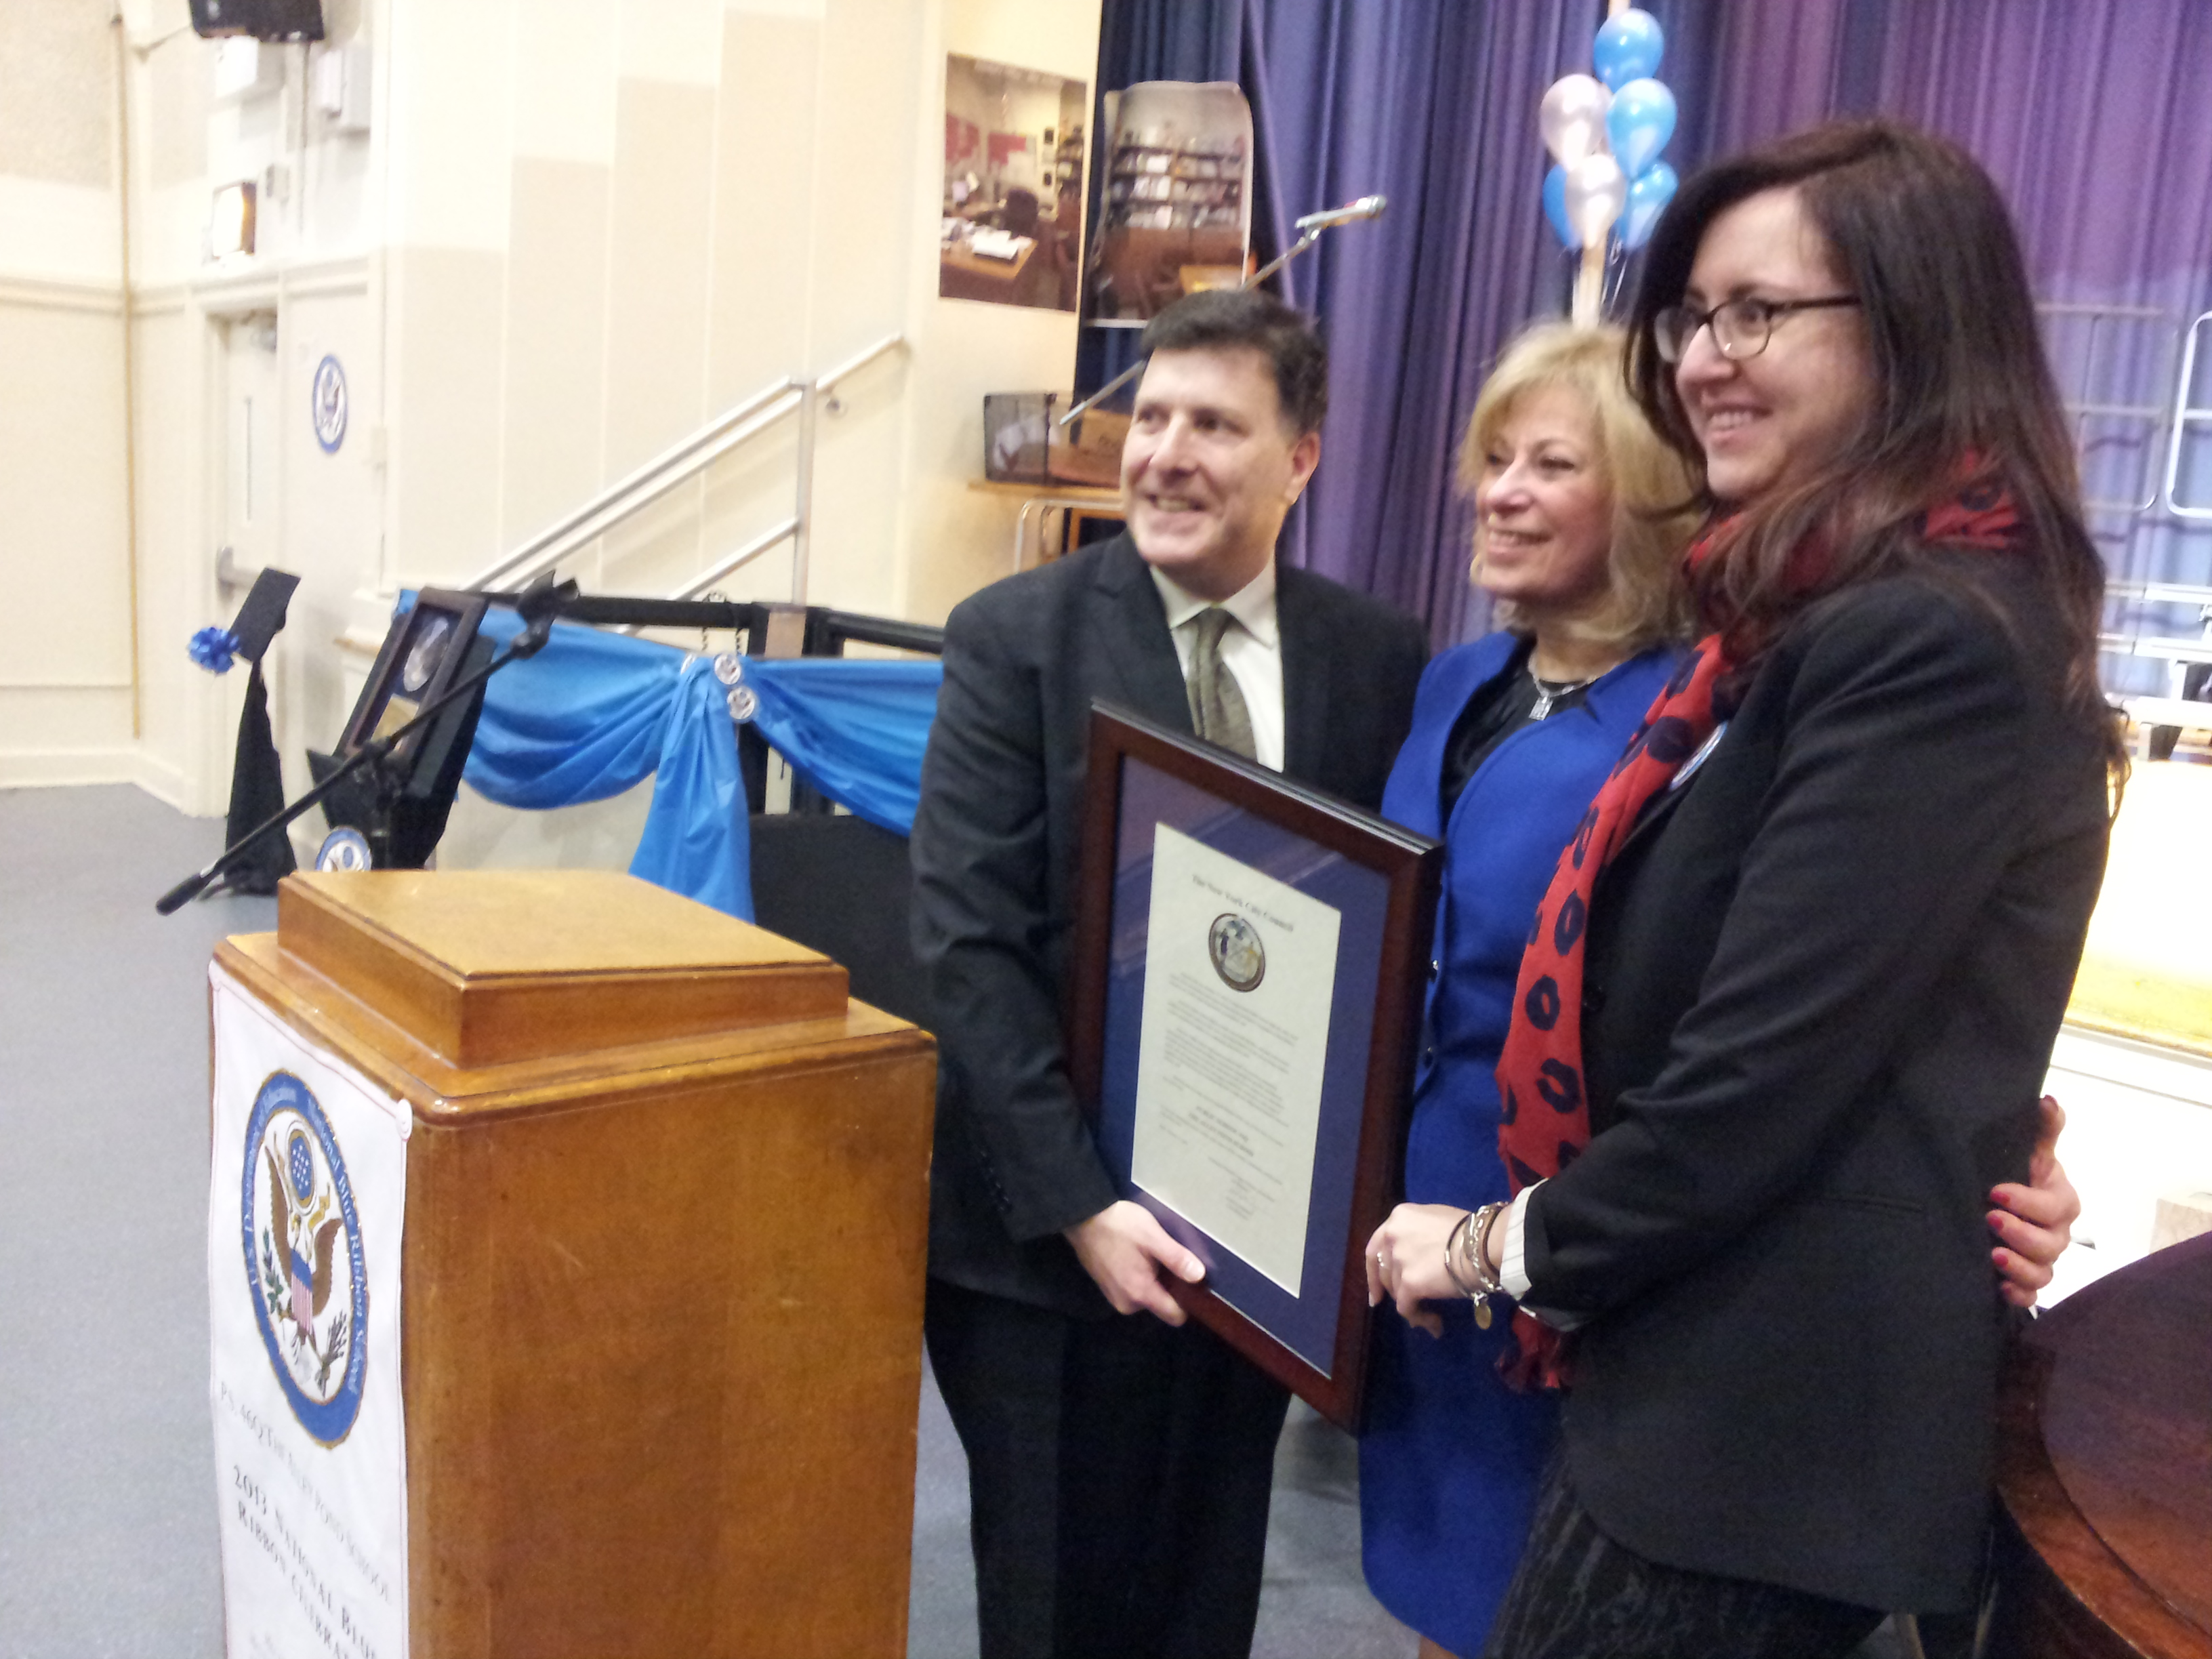 Assemblywoman Nily Rozic and Council Member Mark Weprin congratulated Principal Marsha Goldberg and P.S. 46 in Oakland Gardens for receiving the Blue Ribbon Award.